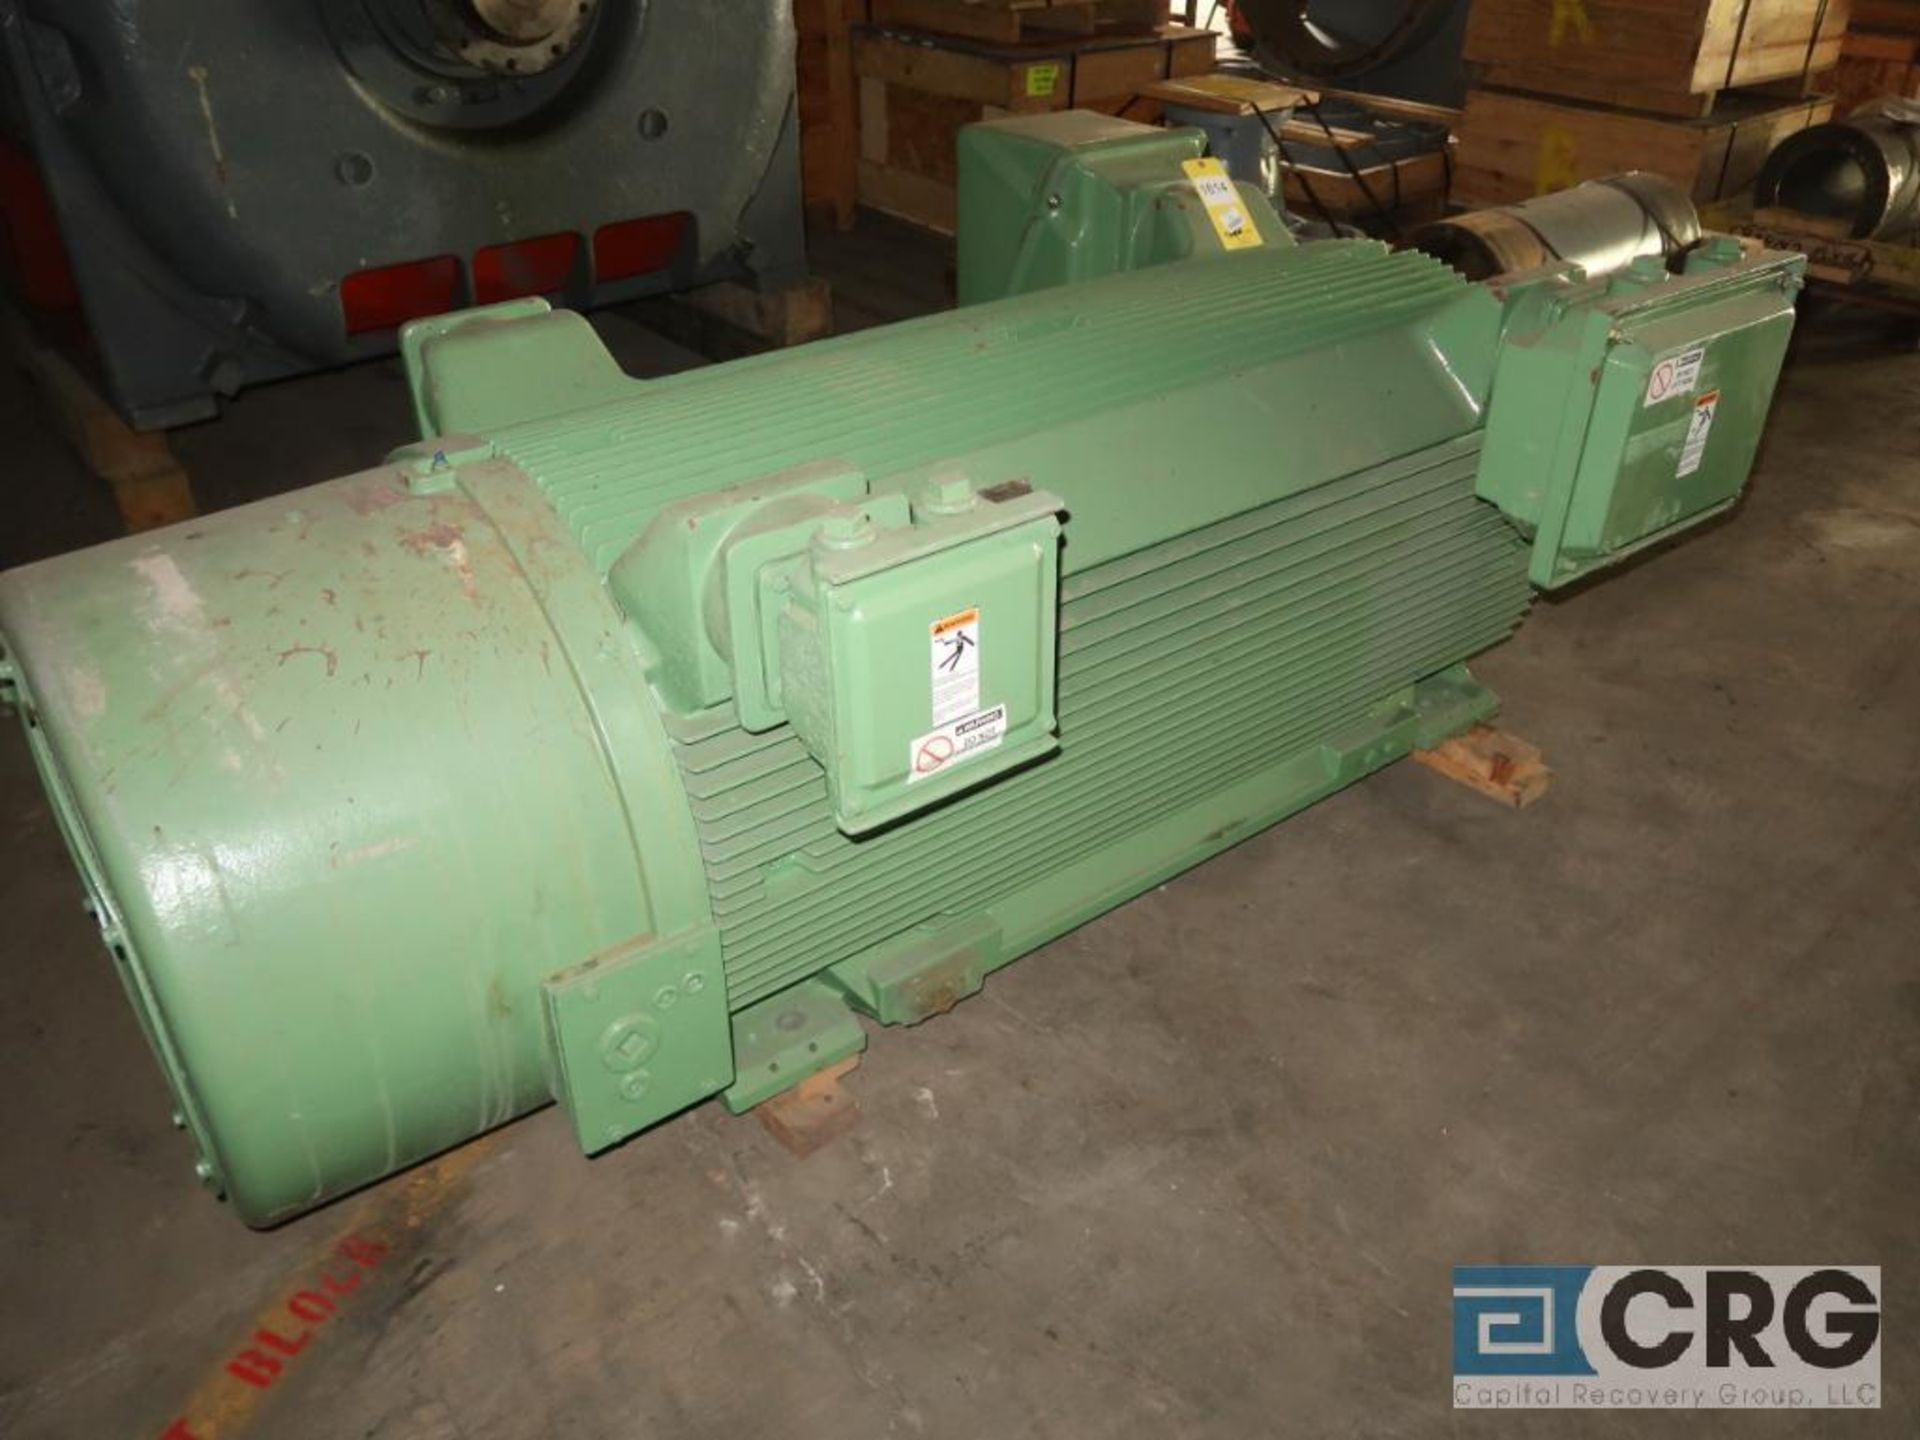 Siemens 700 HP induction motor, 2,300 volt, 3 ph., 3,572 RPM, frame 5013 (Off Site Warehouse) - Image 2 of 3